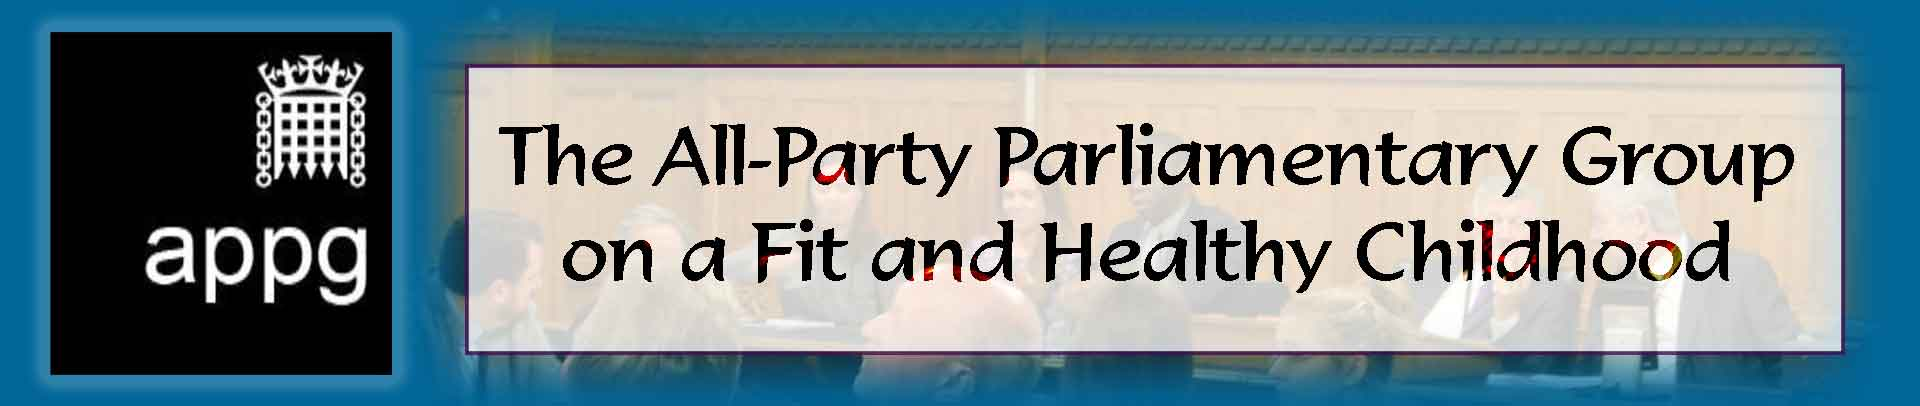 The All-Party Parliamentary Group on a Fit and Healthy Childhood